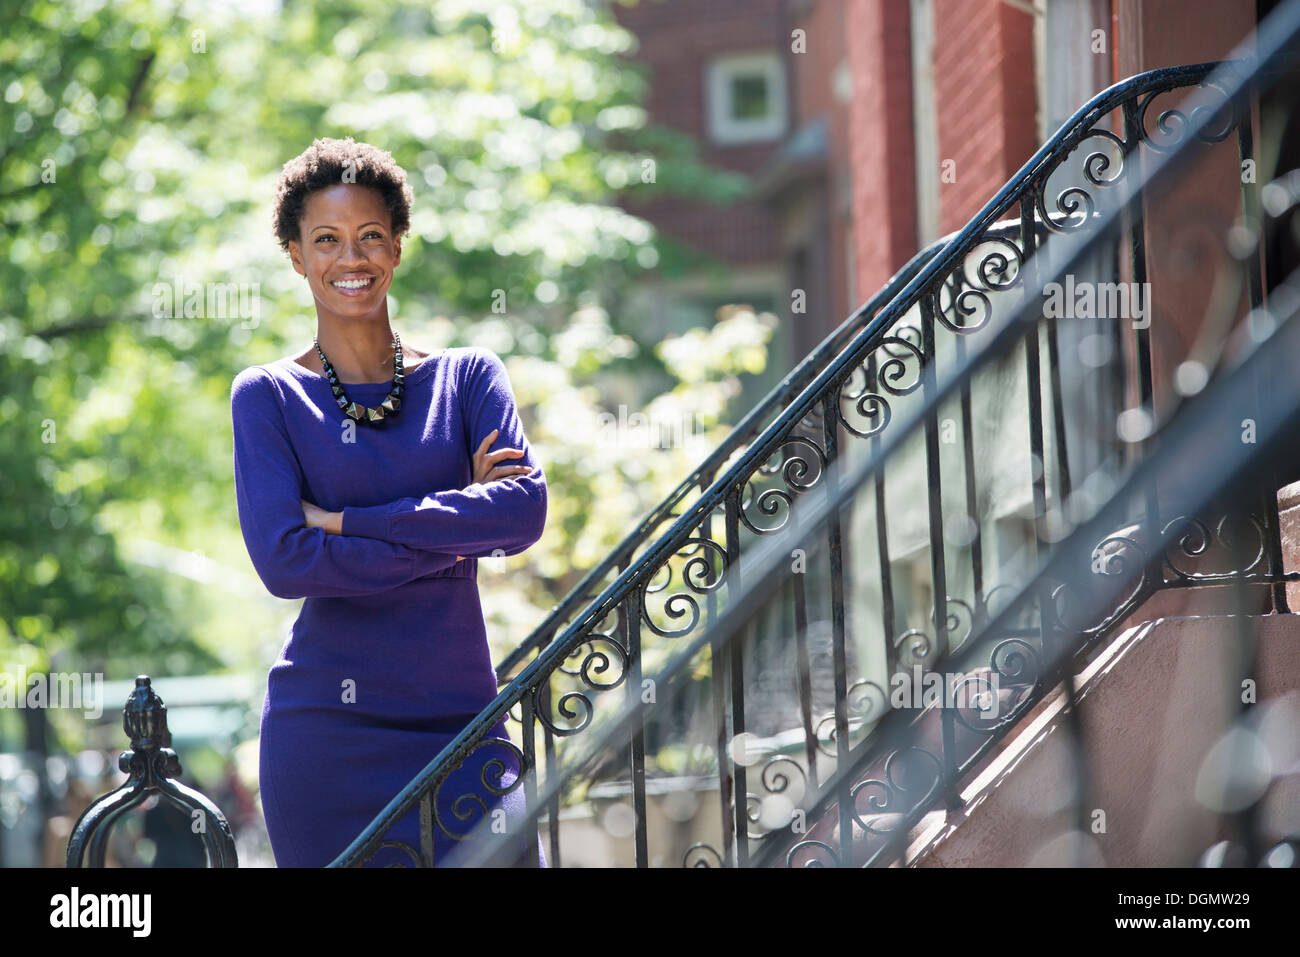 City. A woman wearing a purple dress, standing on the steps outside a townhouse. - Stock Image